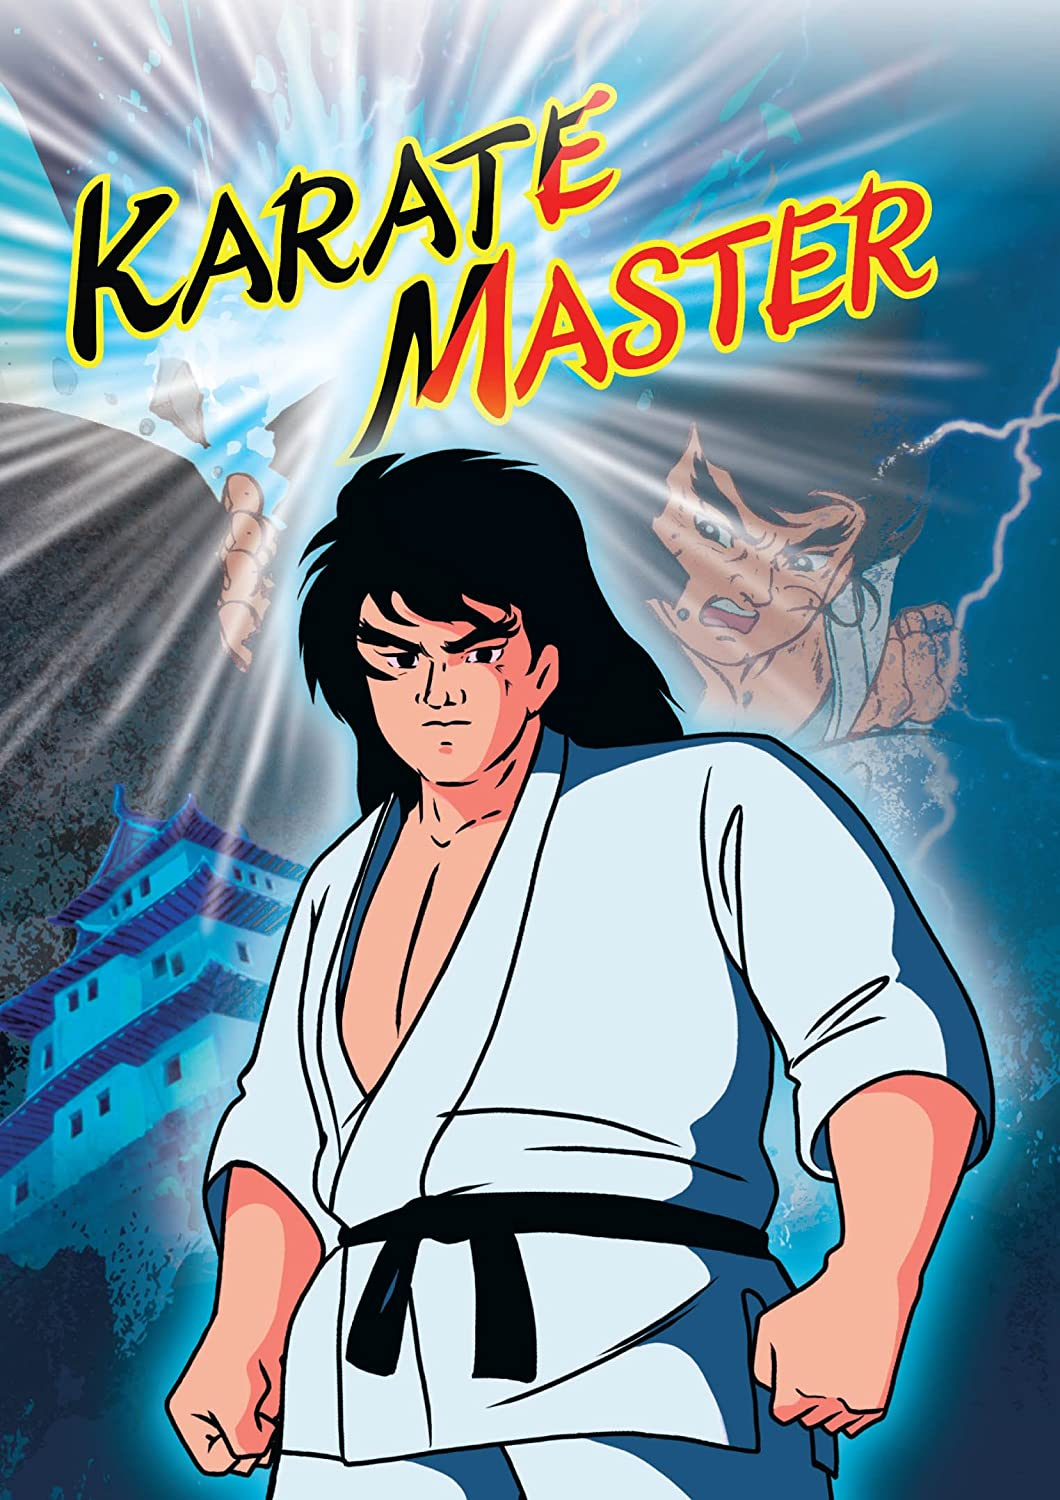 An image of the cover of the DVD release of the 1973 - 1974 Karate Master TV anime by Discotek Media, featuring artwork of the main character, Ken Asuka, standing with a determined look in his karate gi in front of a Japanese castle.